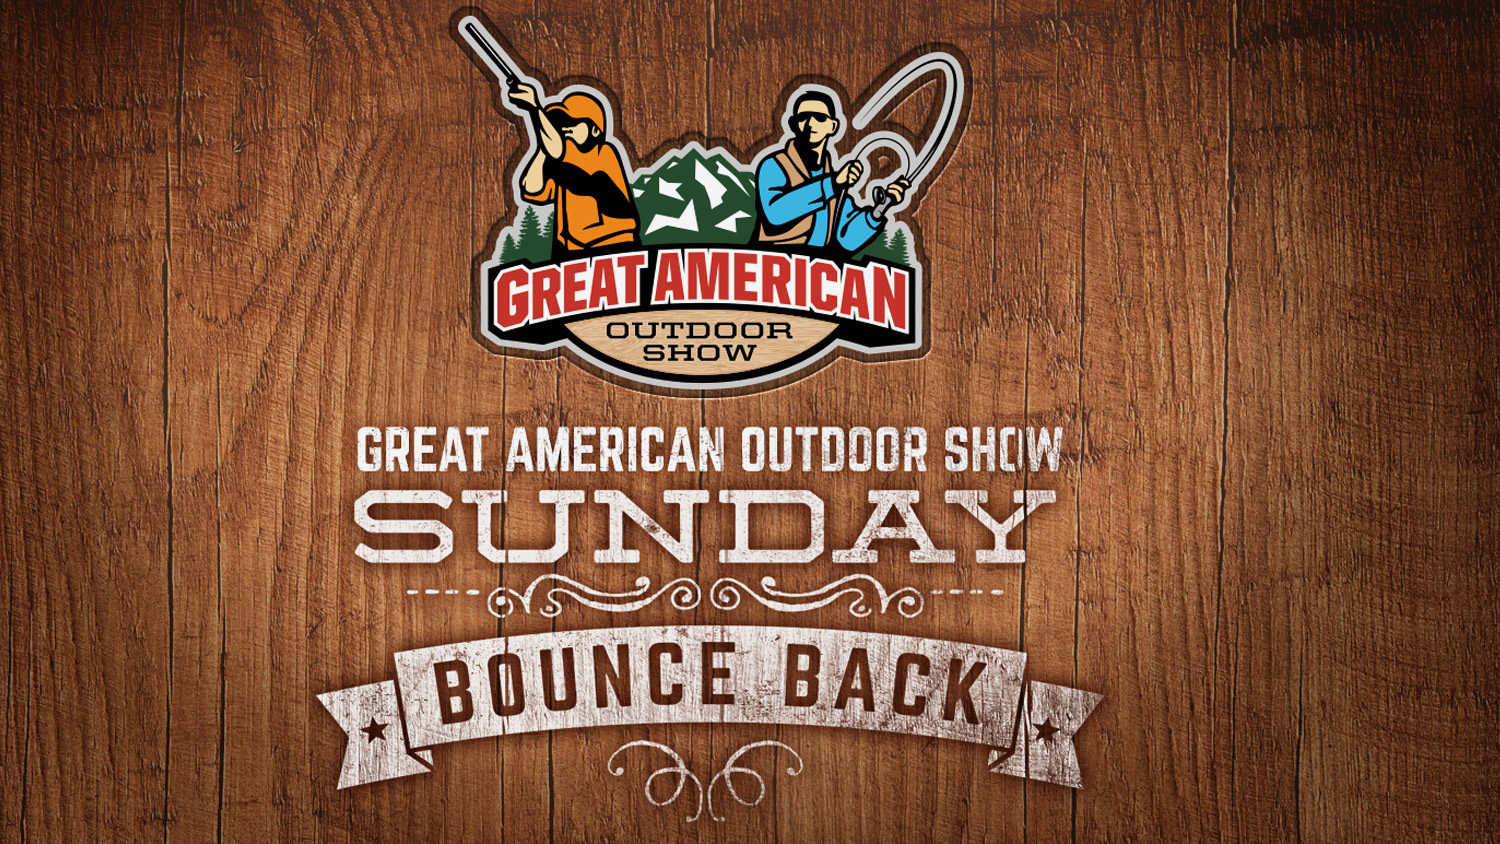 Bounce Back Sunday at the Great American Outdoor Show